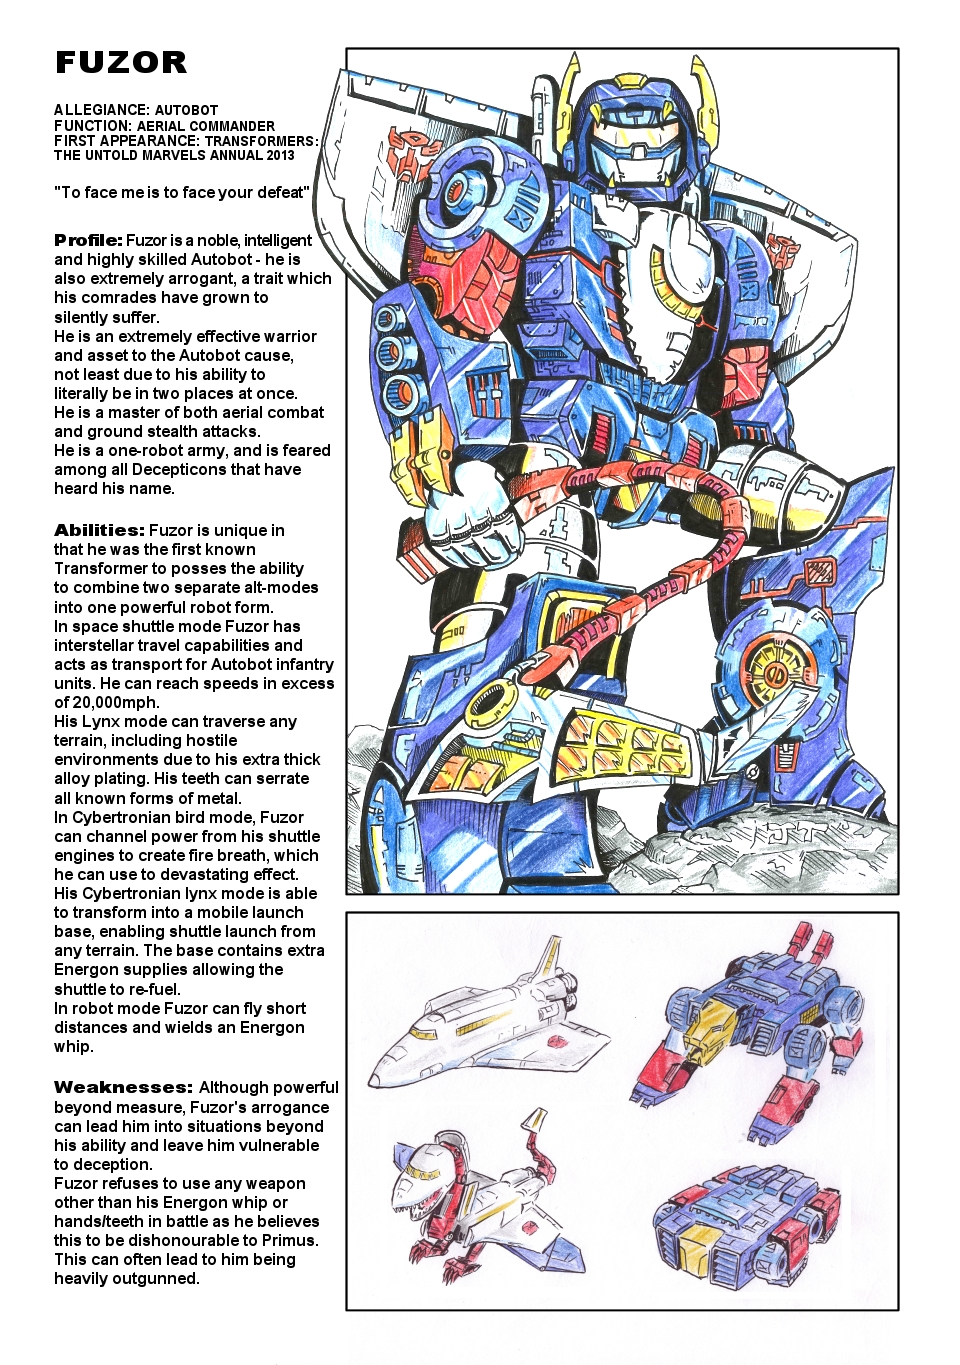 Uk G1 Untold Marvels Annual 2013 profile - Fuzor